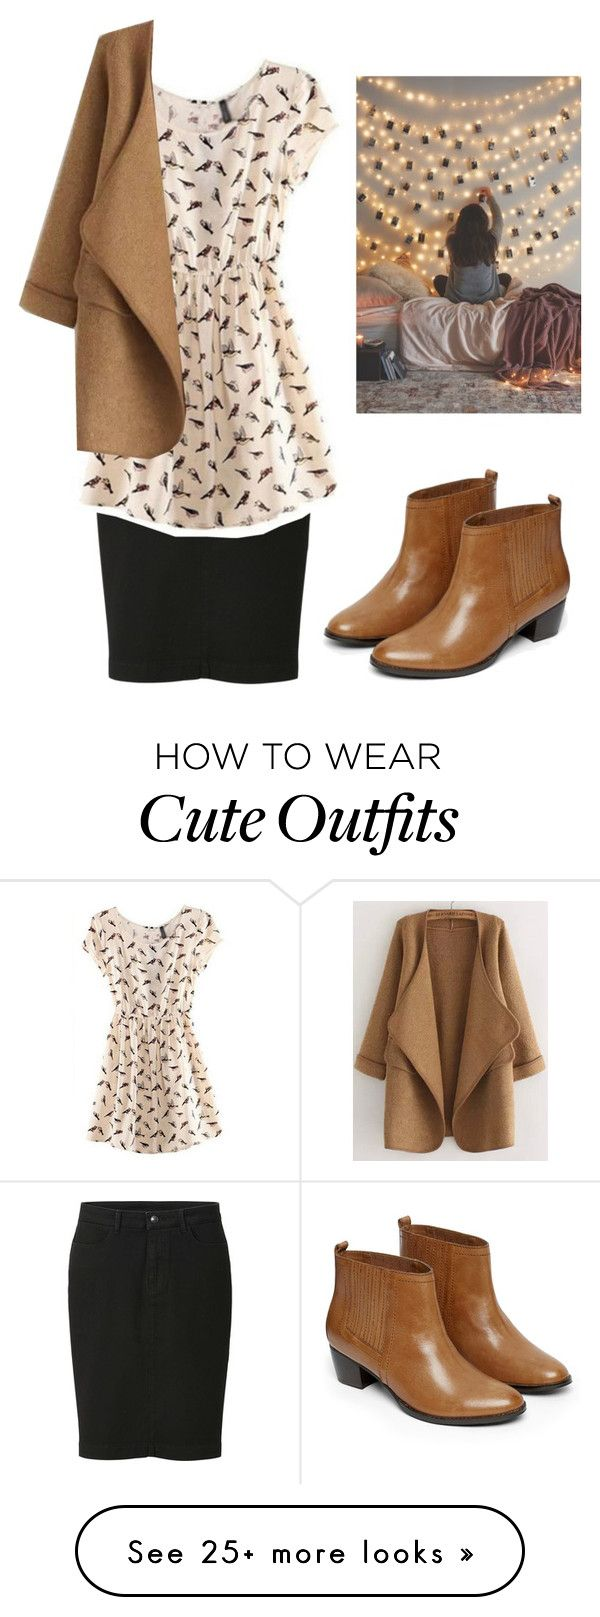 """Pentecostal outfits"" by lizzie2461 on Polyvore featuring Uniqlo, WithChic, Warehouse, women's clothing, women's fashion, women, female, woman, misses and juniors"